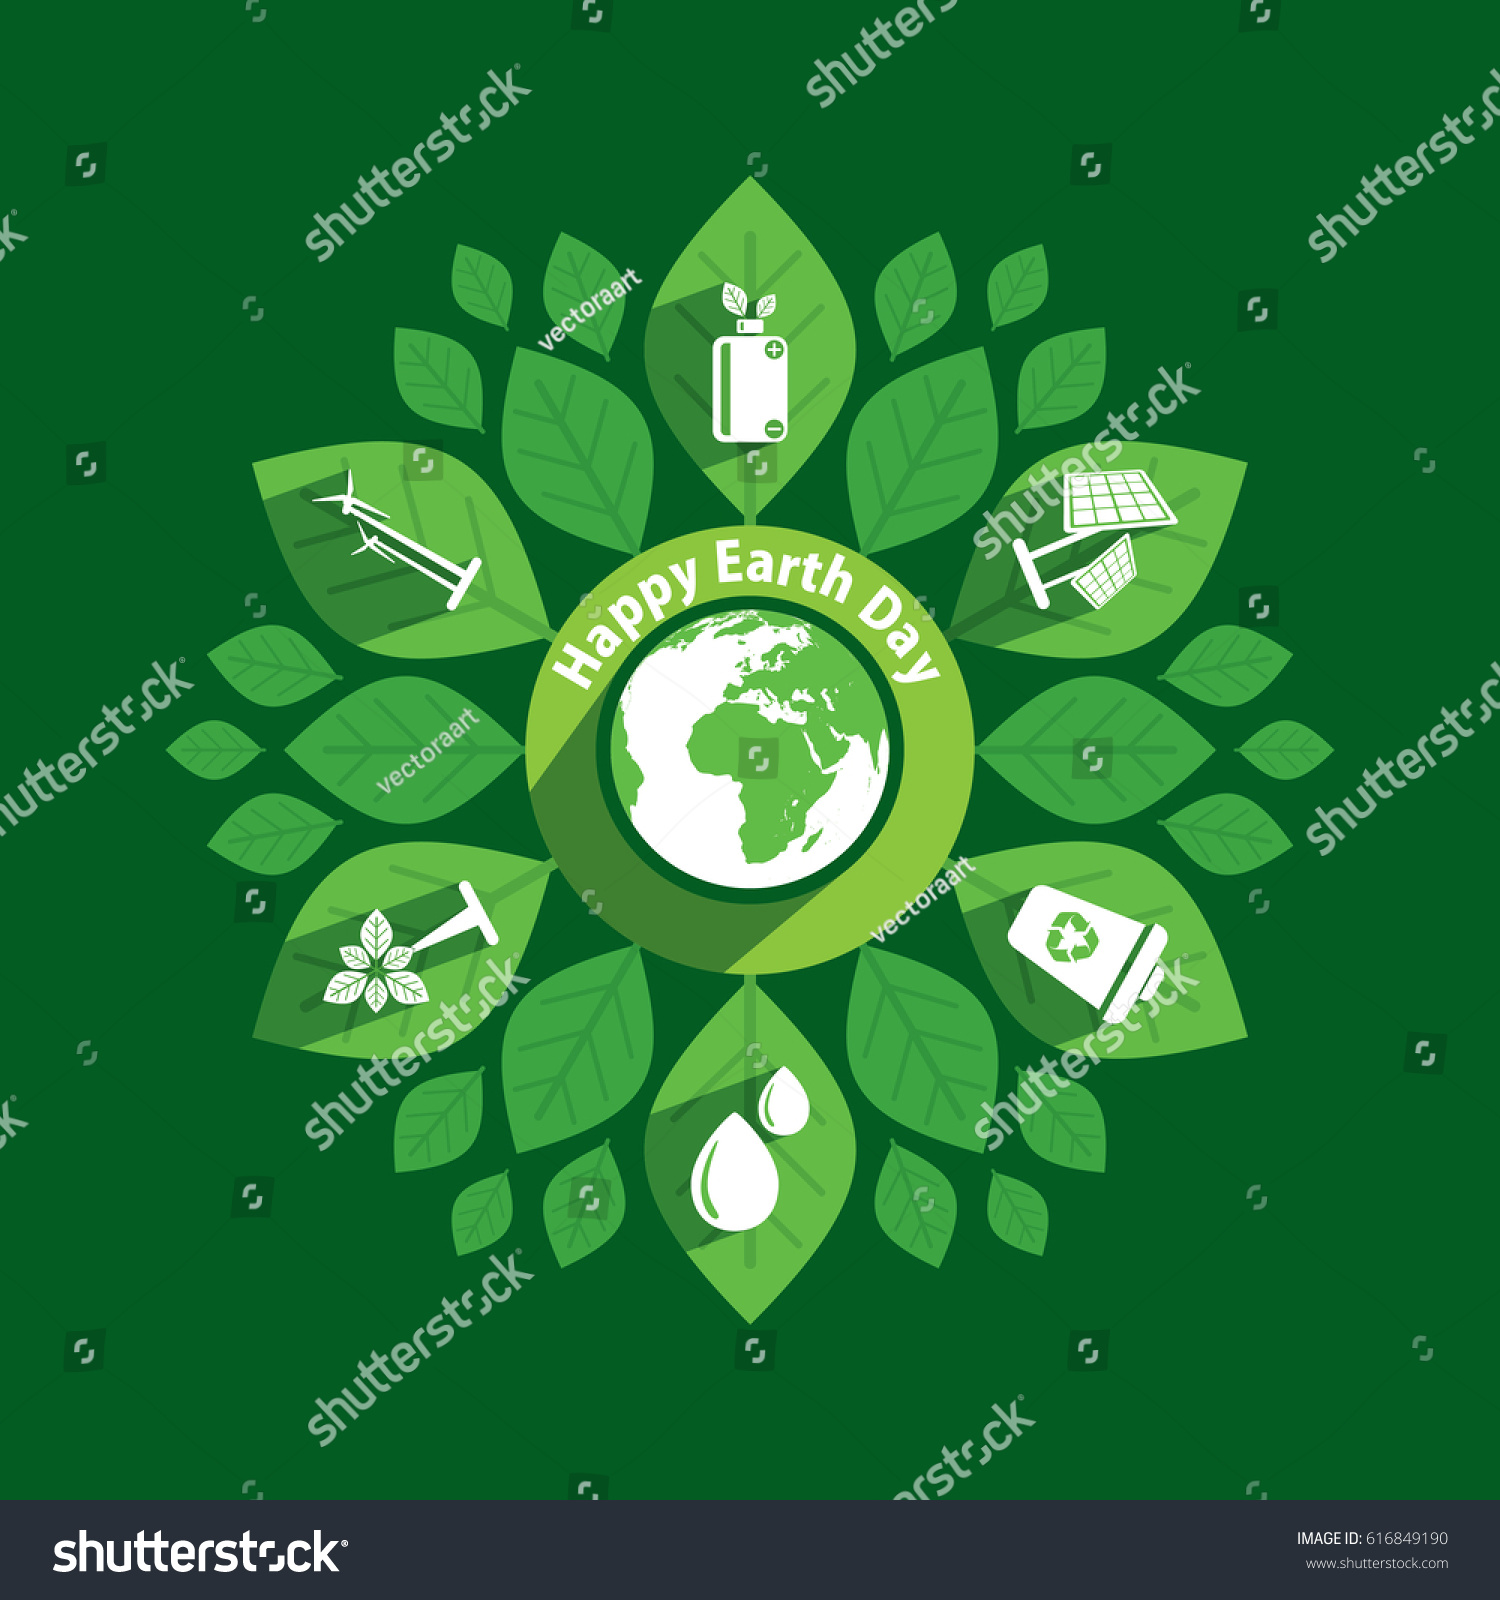 Poster design generator - Earth Day Poster Using Green Natural Energy Generator Concept Design